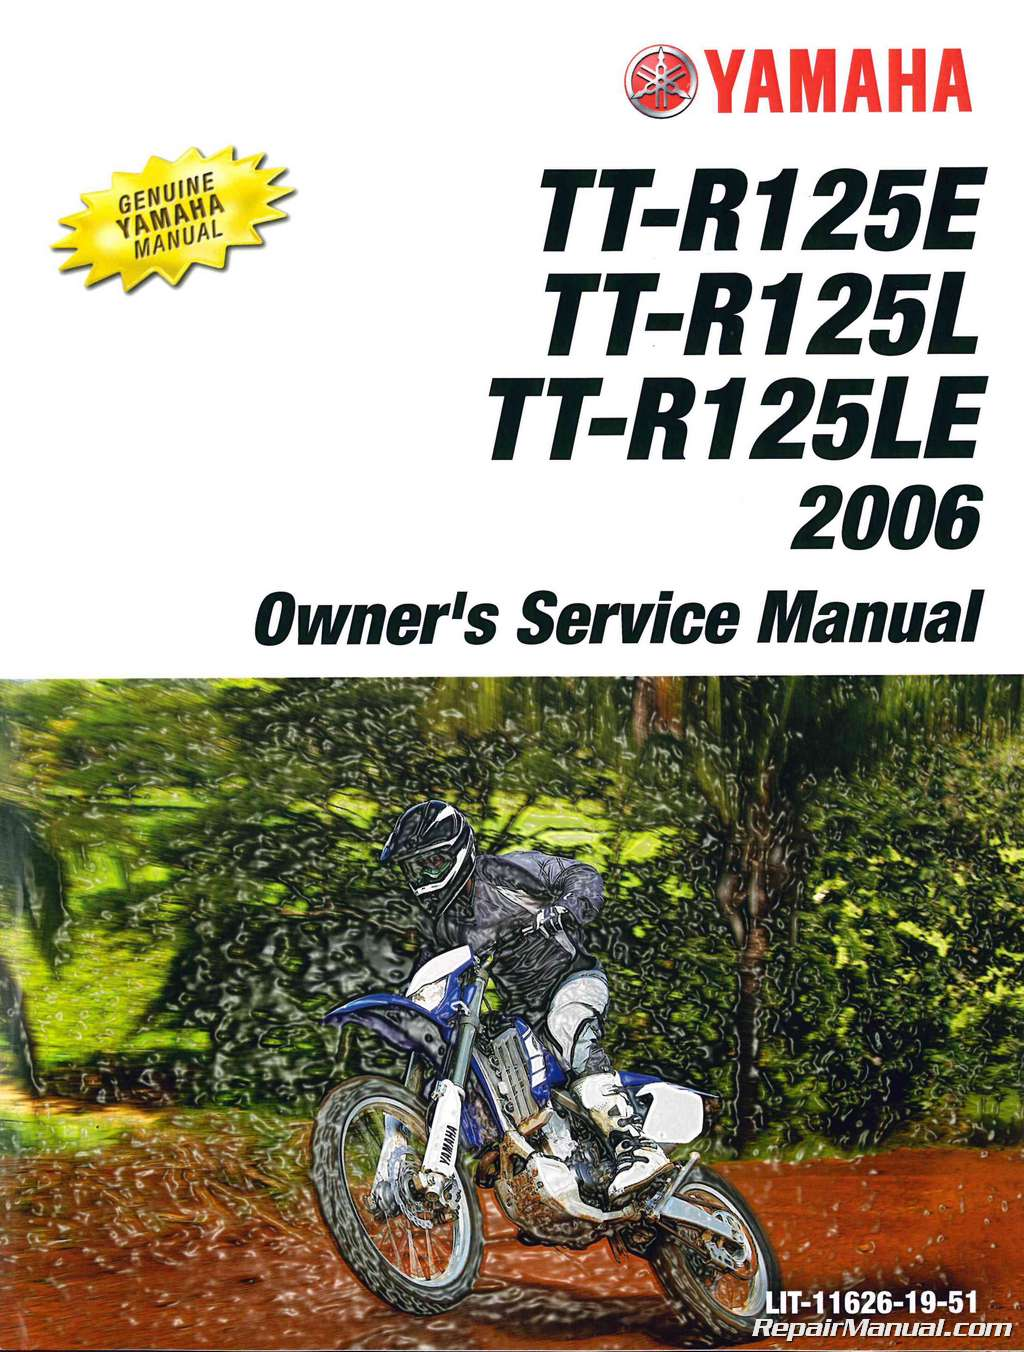 2006-Yamaha-TT-R125-Owner-Service-Manual.jpg ...